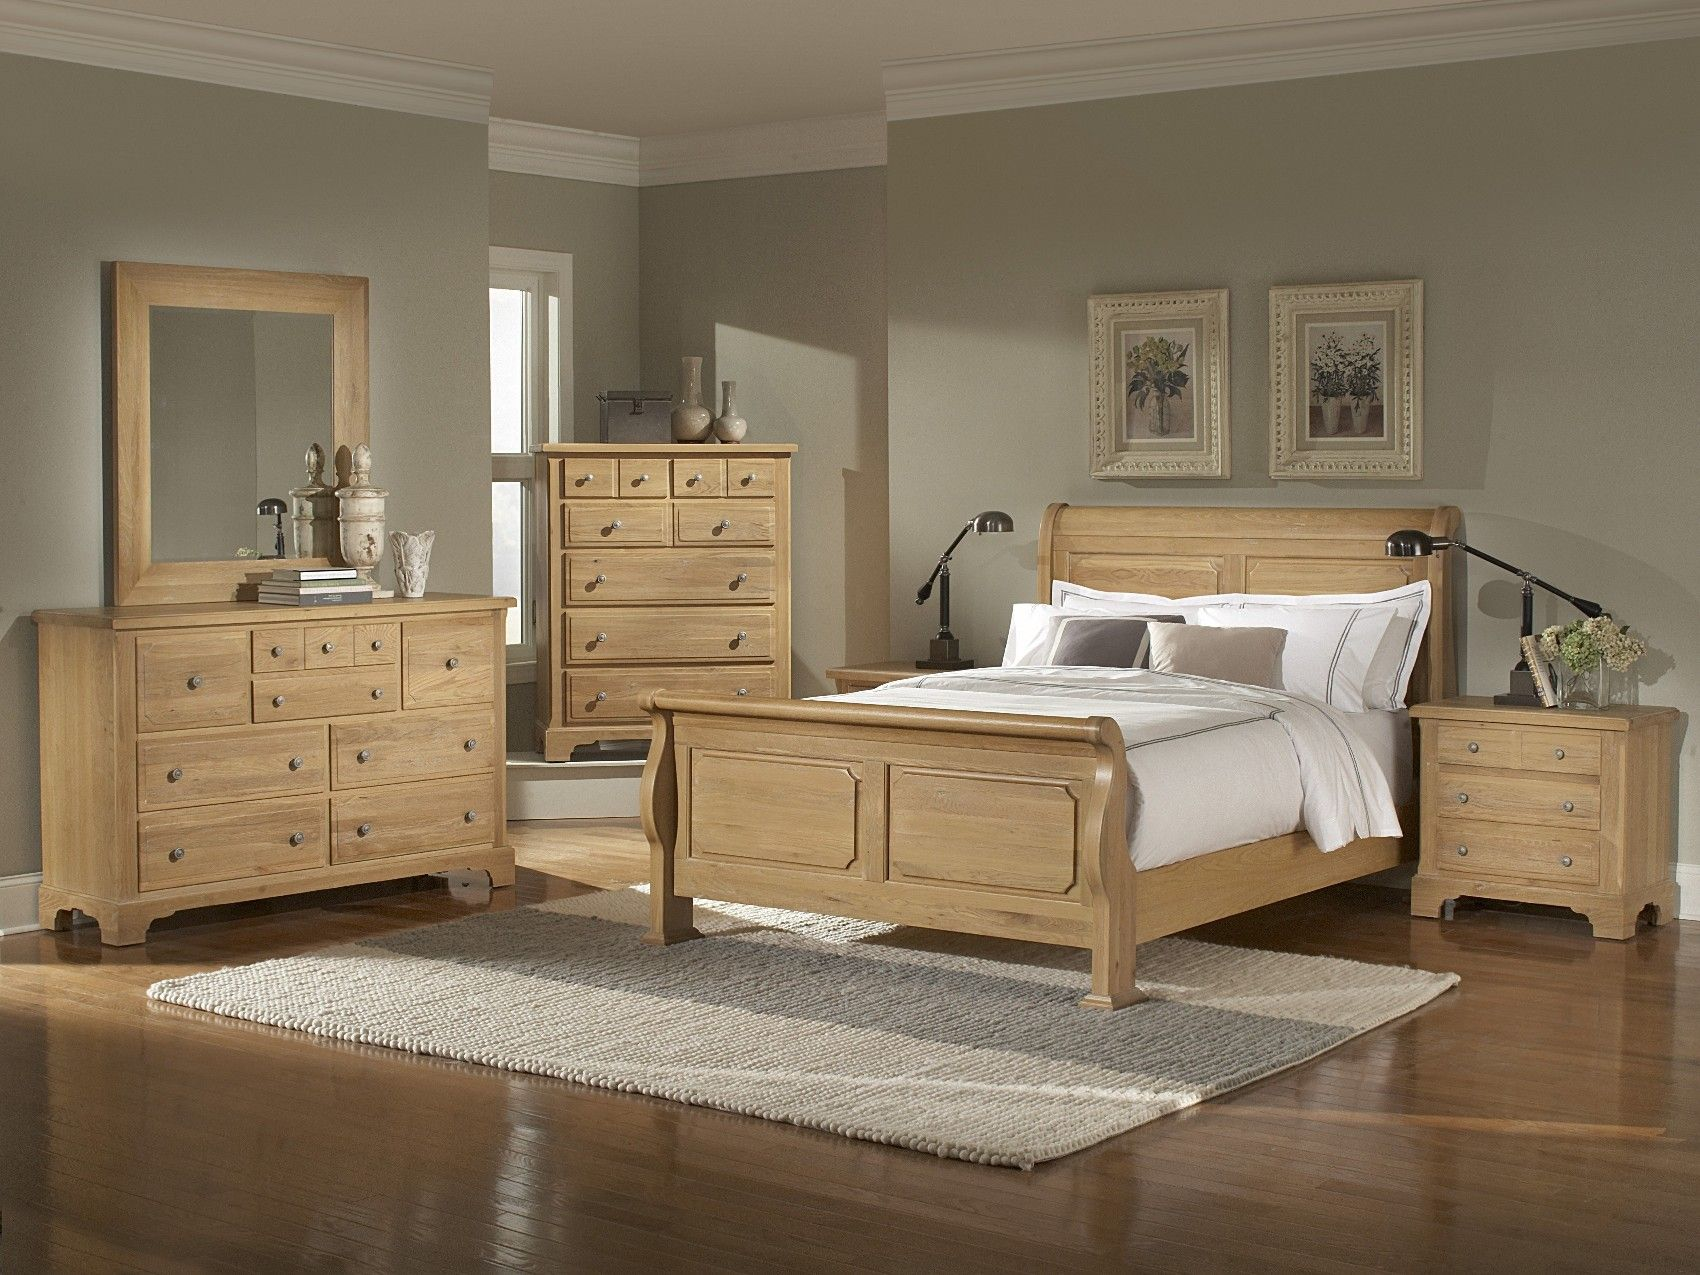 oak bedroom furniture sets  Washed Oak Queen Sleigh Bedroom Group A at Best 25 ideas on Pinterest Black painted